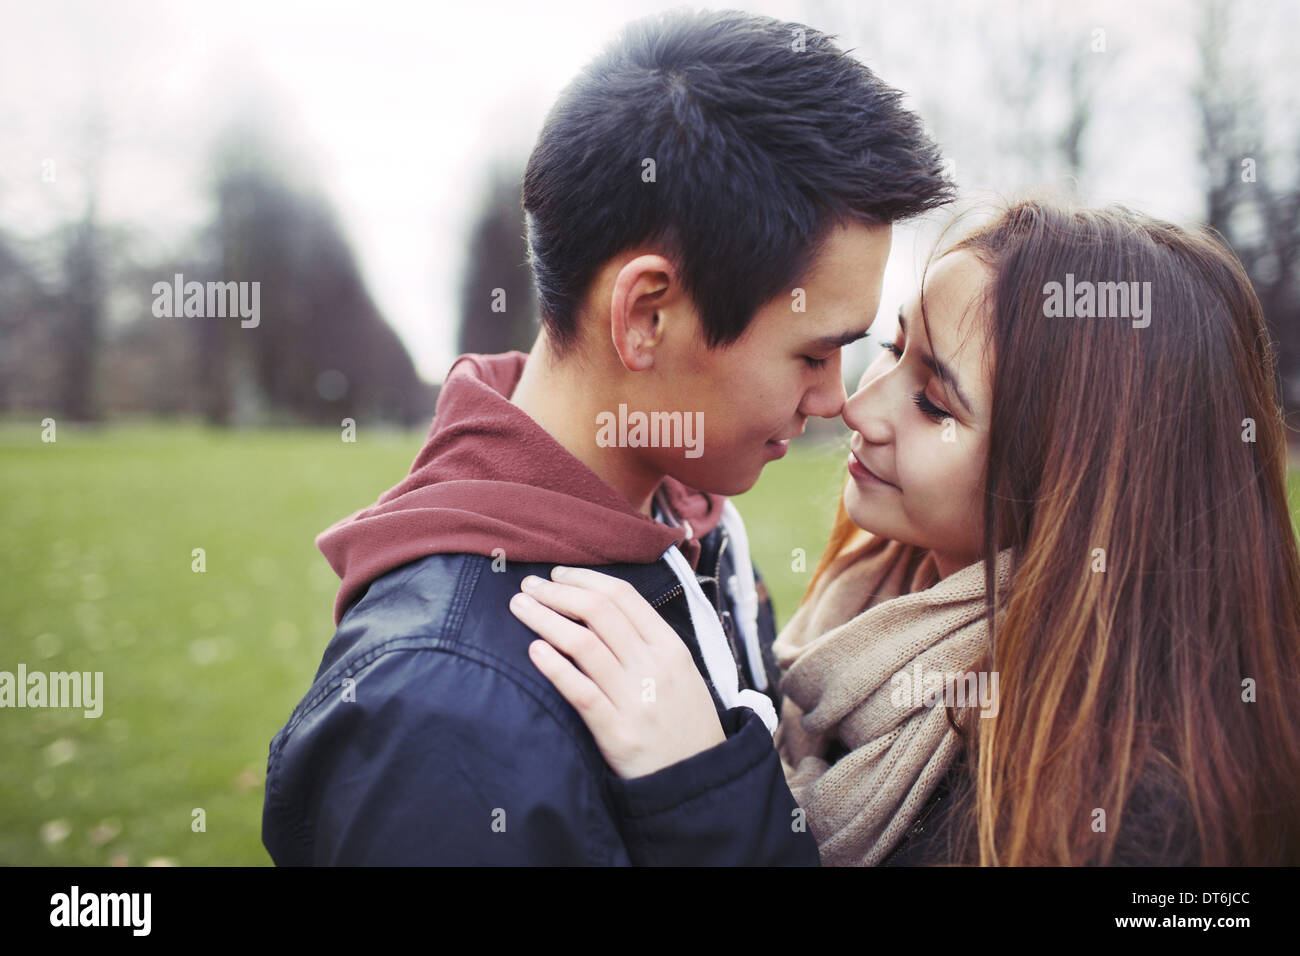 Teenage couple in romantic mood. Affectionate young couple in park. - Stock Image